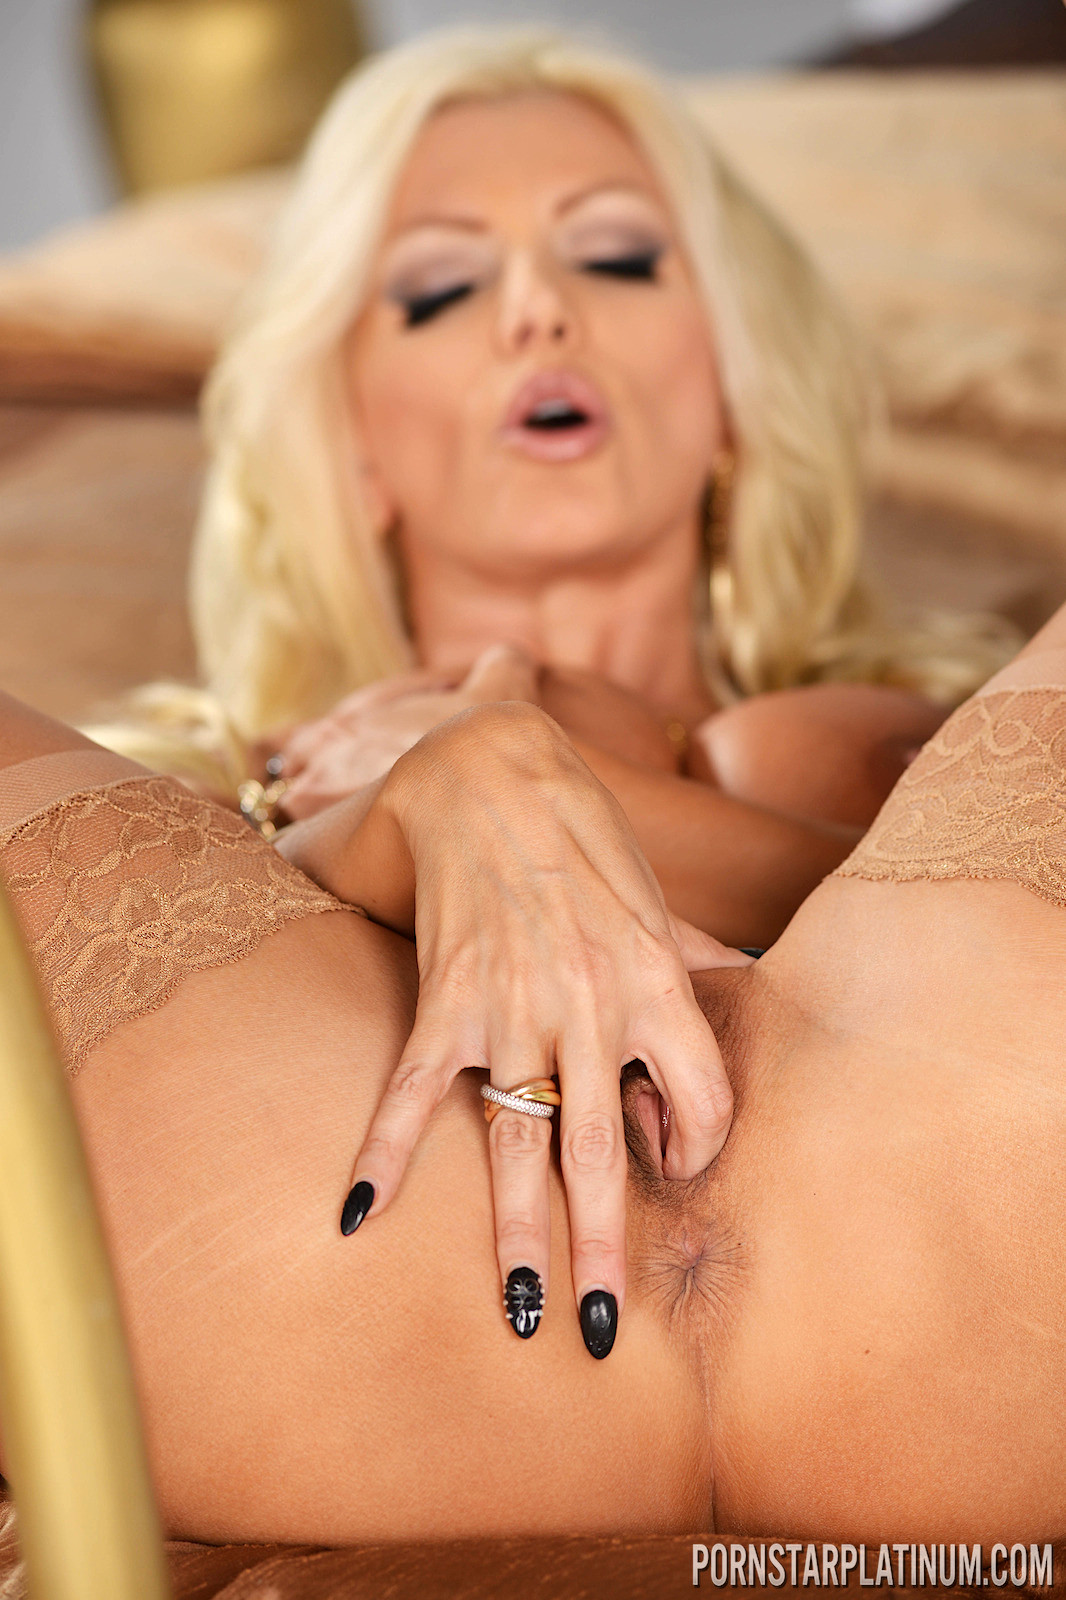 Brittany andrews movies